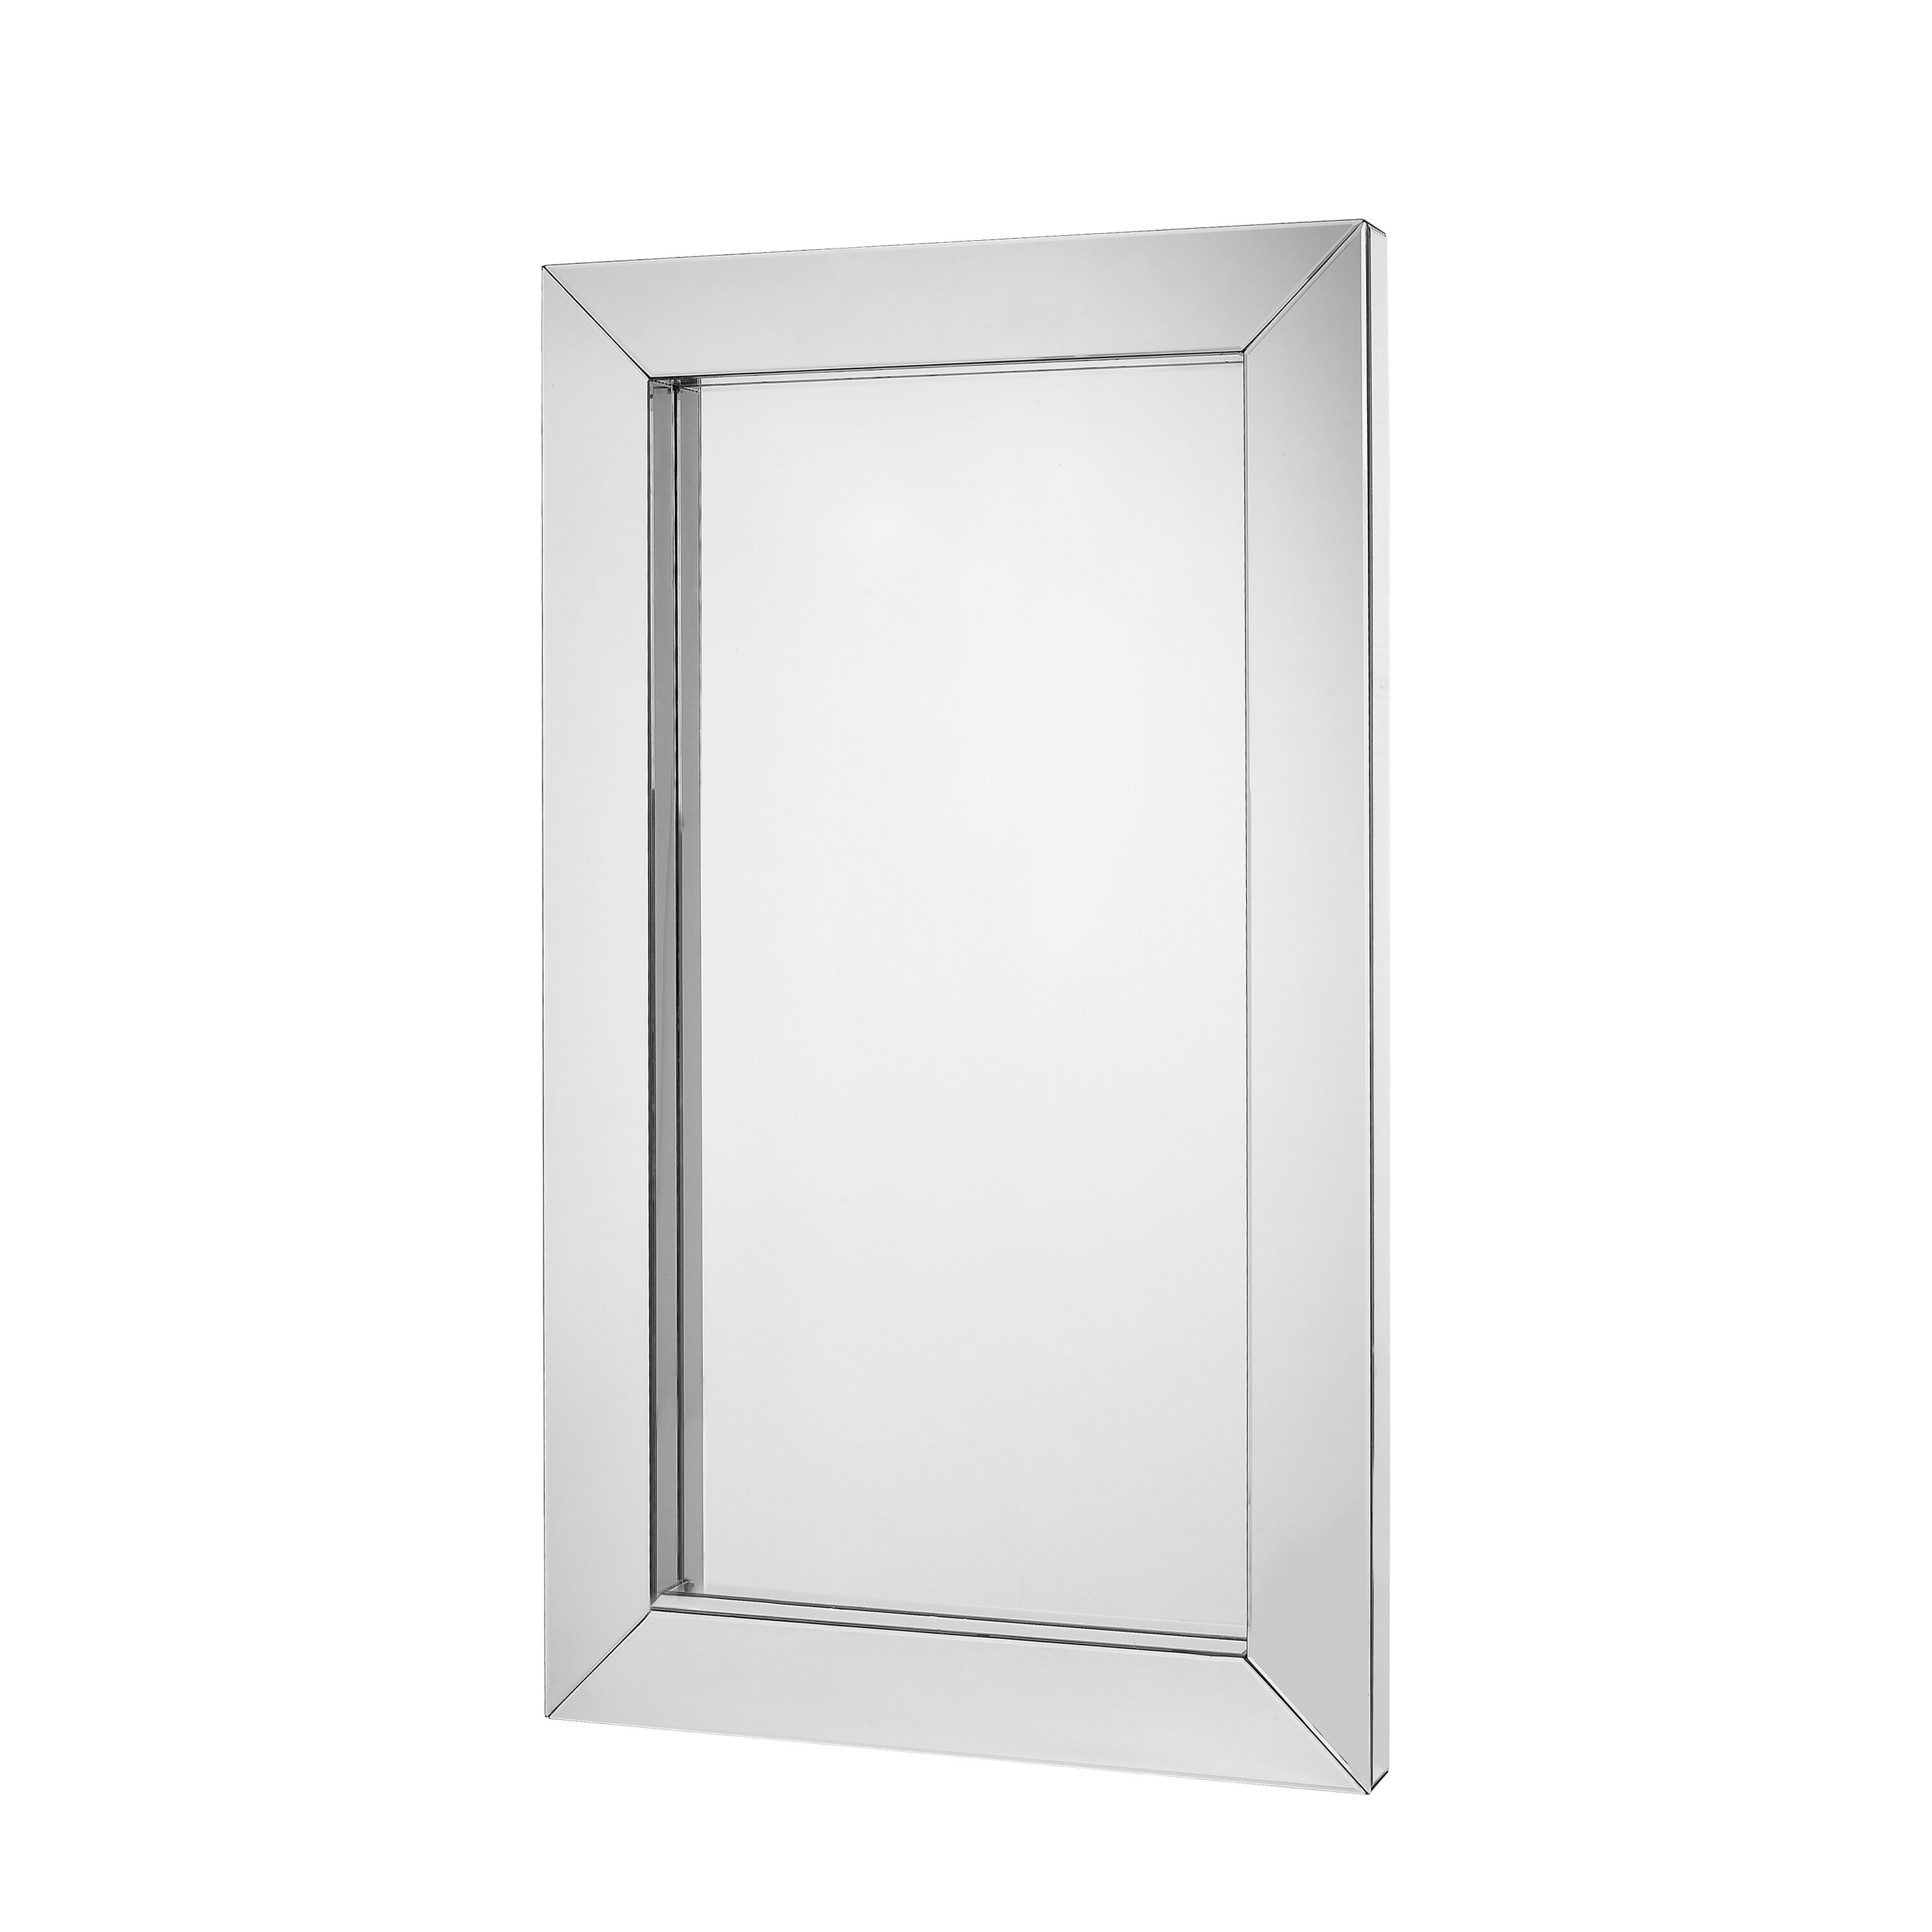 Majestic mirror large modern rectangular mirrored wood for Large contemporary mirrors